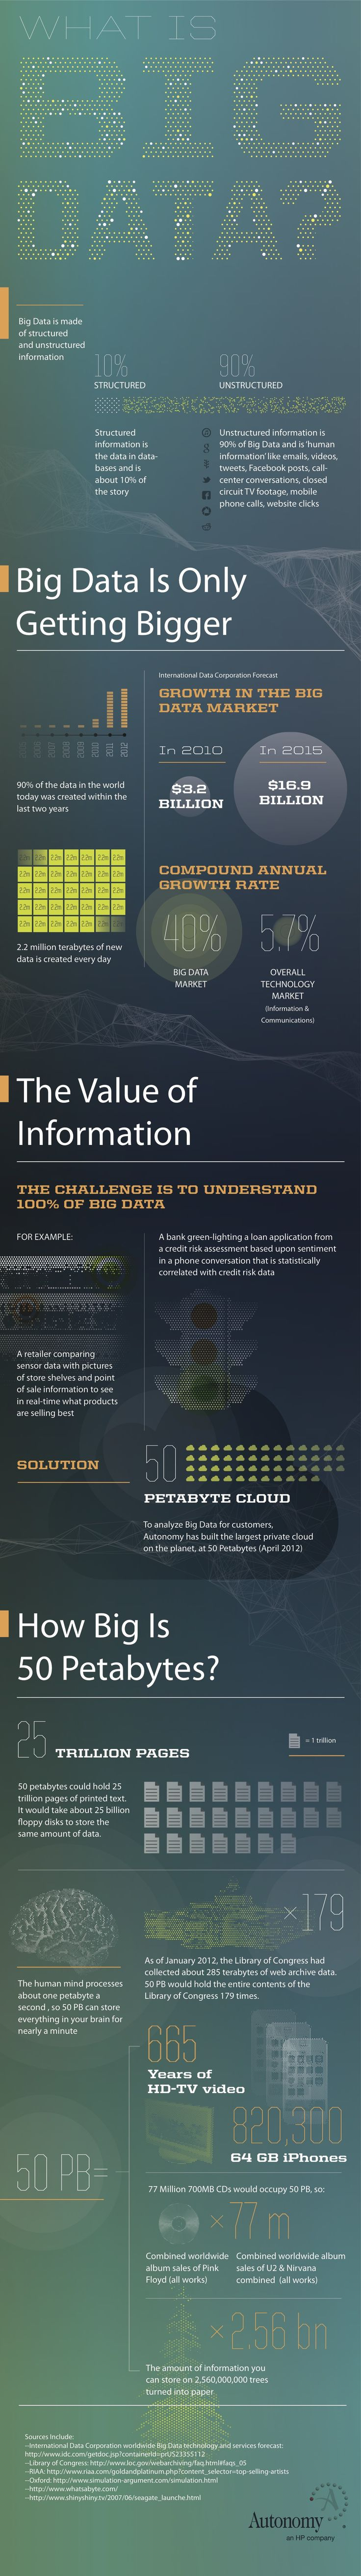 Autonomy-Big-Data-Infographic - EXCELLENT CONTEXT in terms of WHAT BIG DATA LOOKS LIKE.